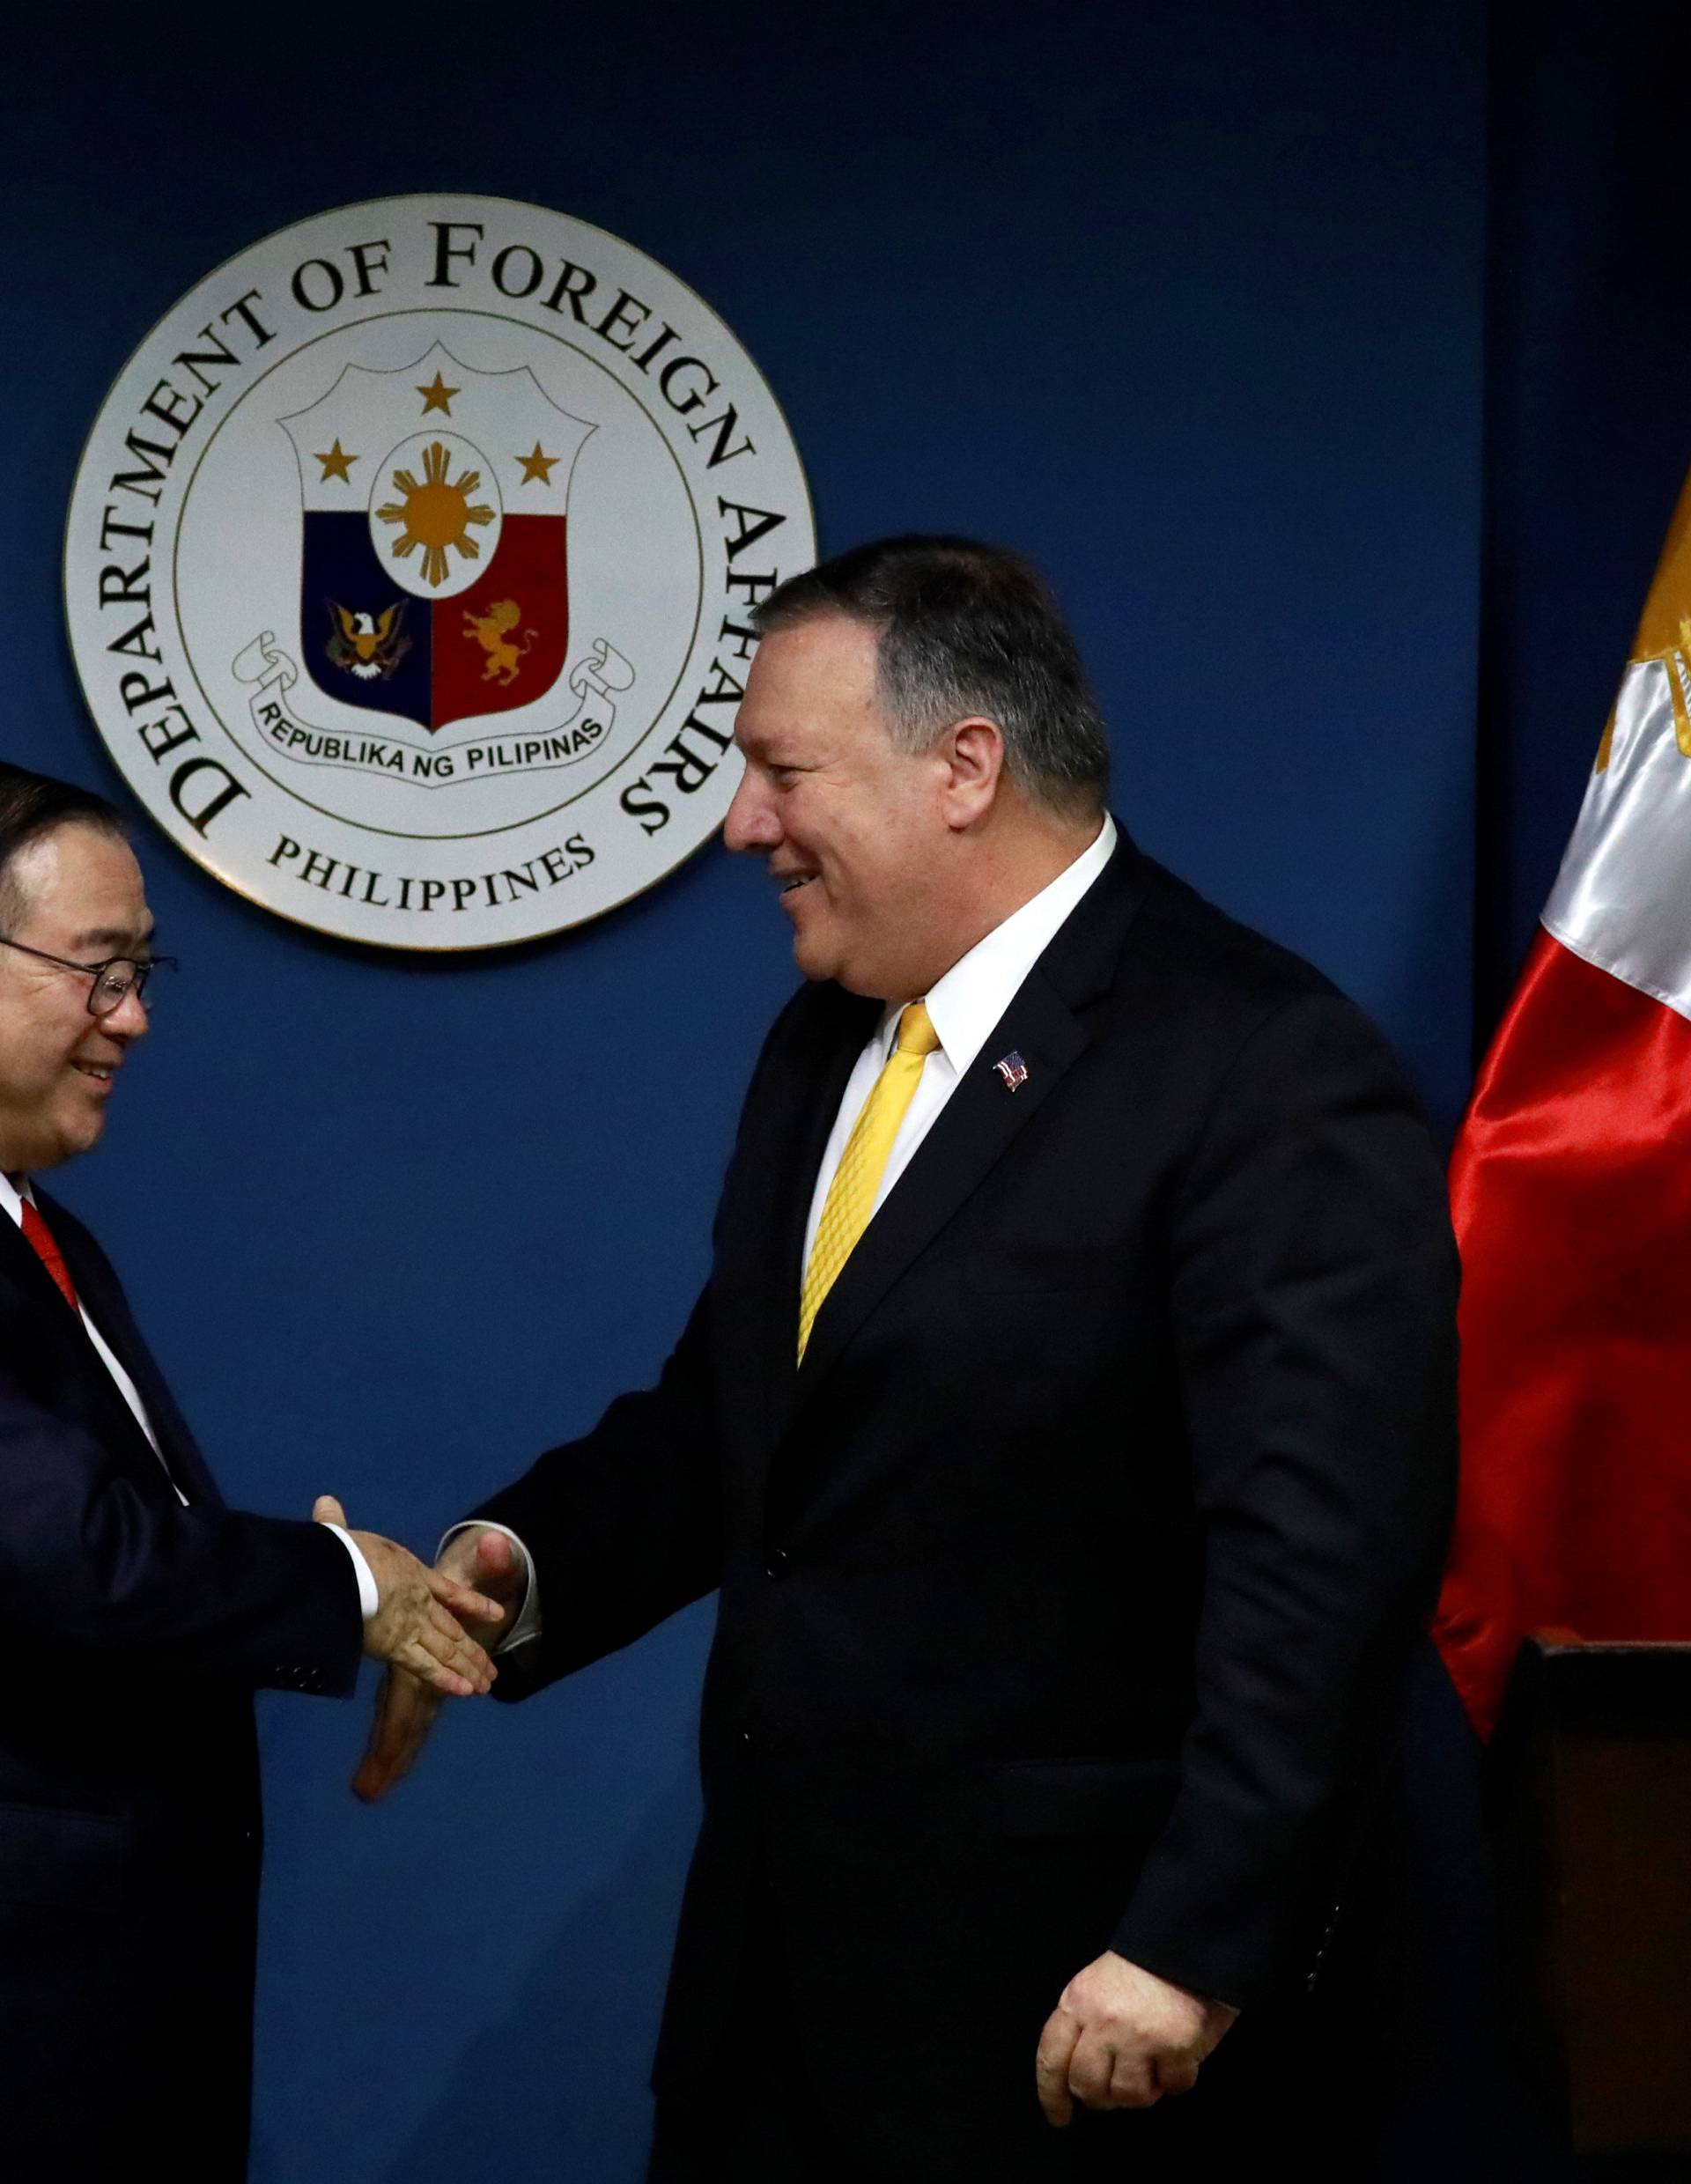 U.S. Secretary of State Mike Pompeo shakes hands with Philippine Foreign Secretary Teodoro Locsin Jr. at the Department of Foreign Affairs in Pasay City